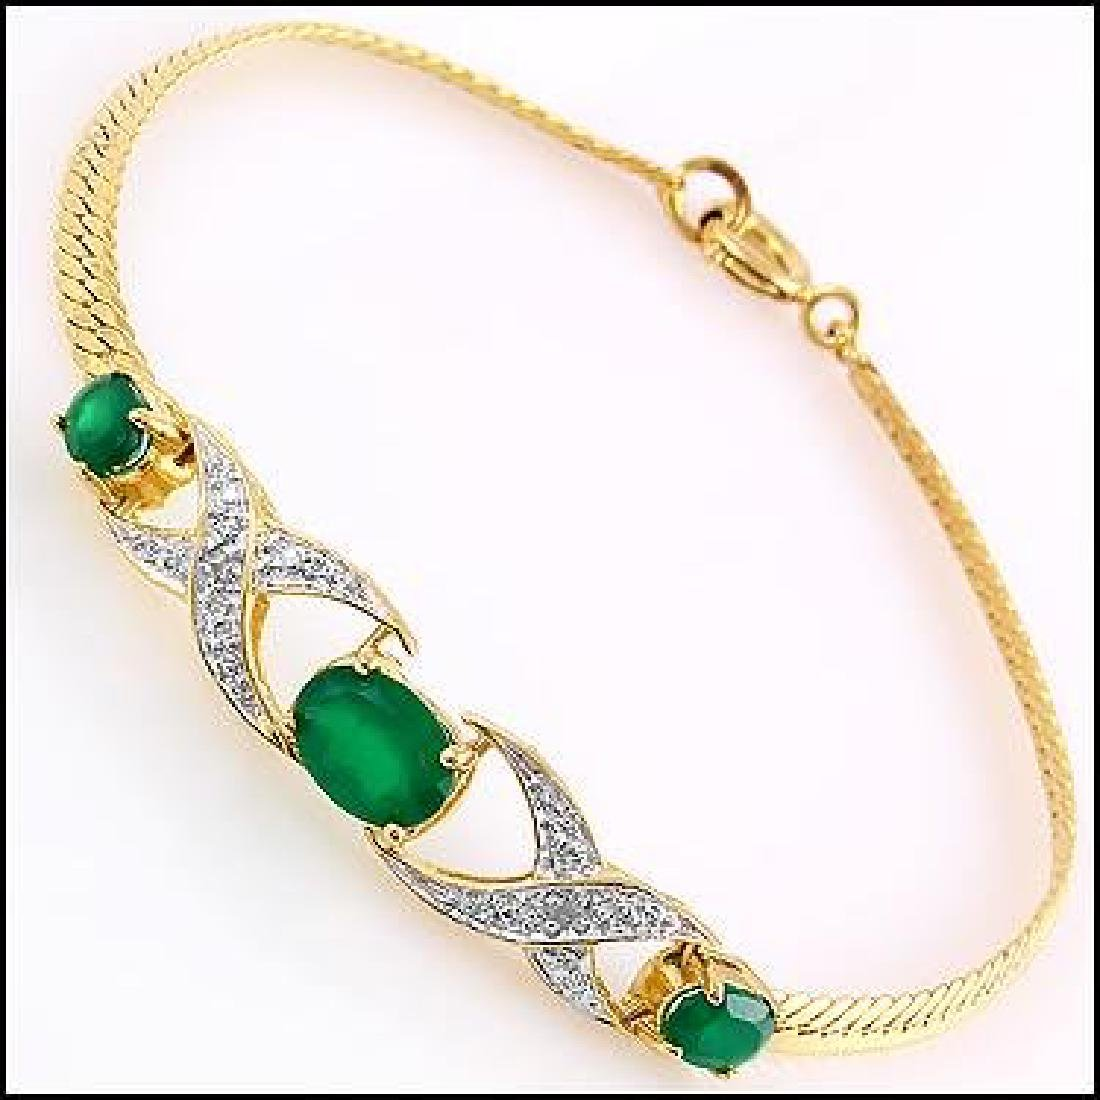 4.7 CT Green Agate Diamond Bracelet - 2